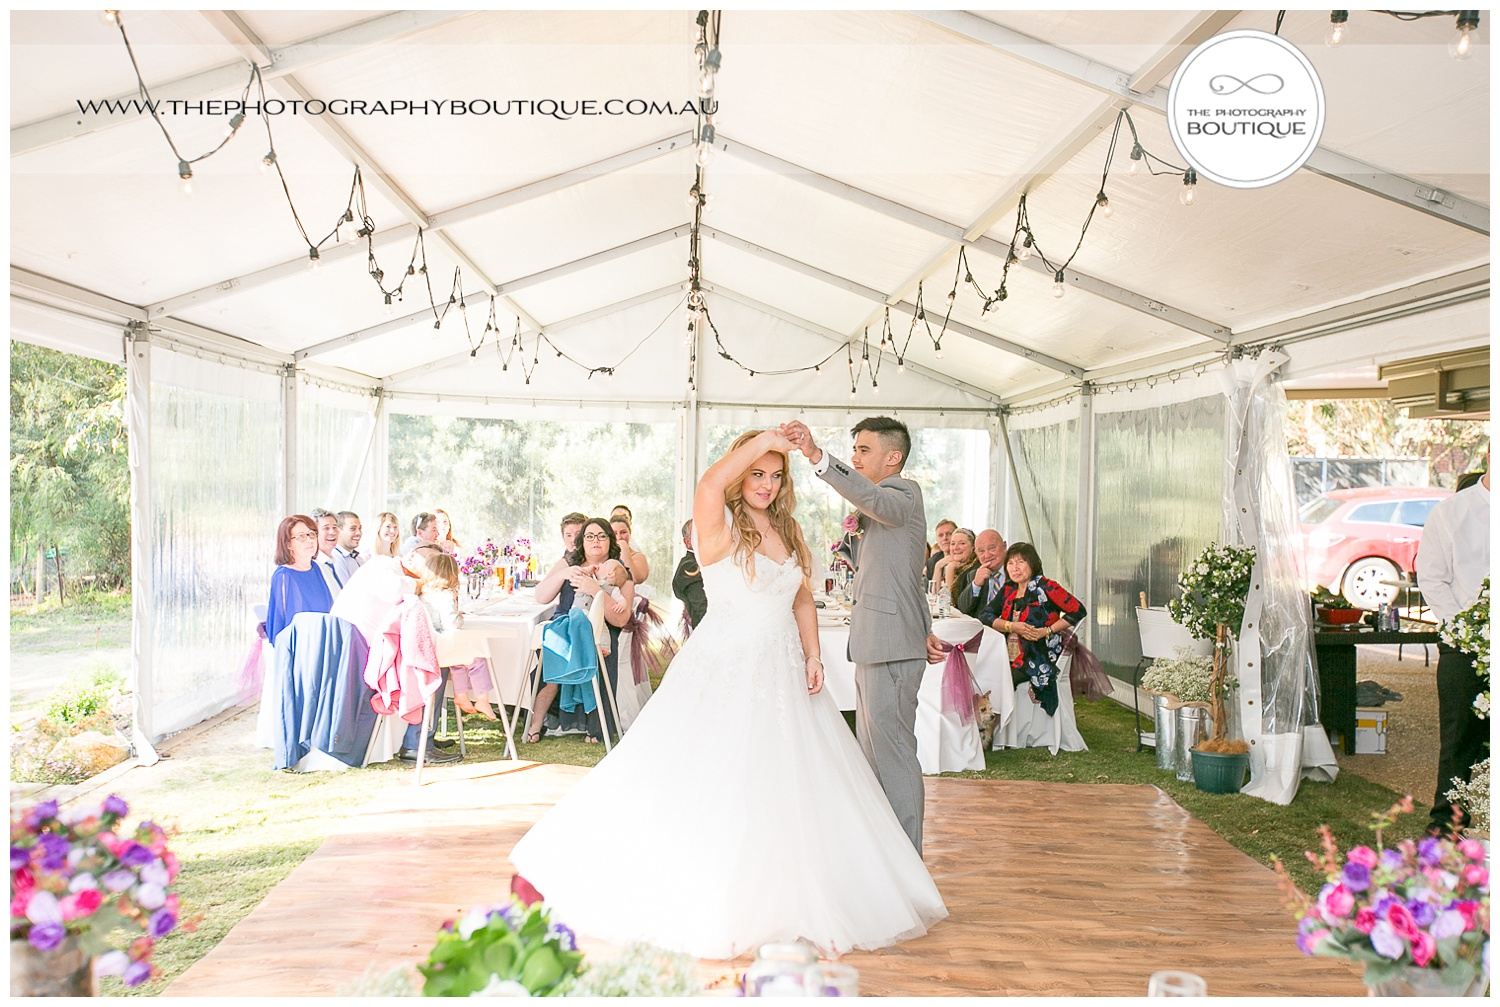 Bride and groom's first dance at Roelands Bunbury wedding